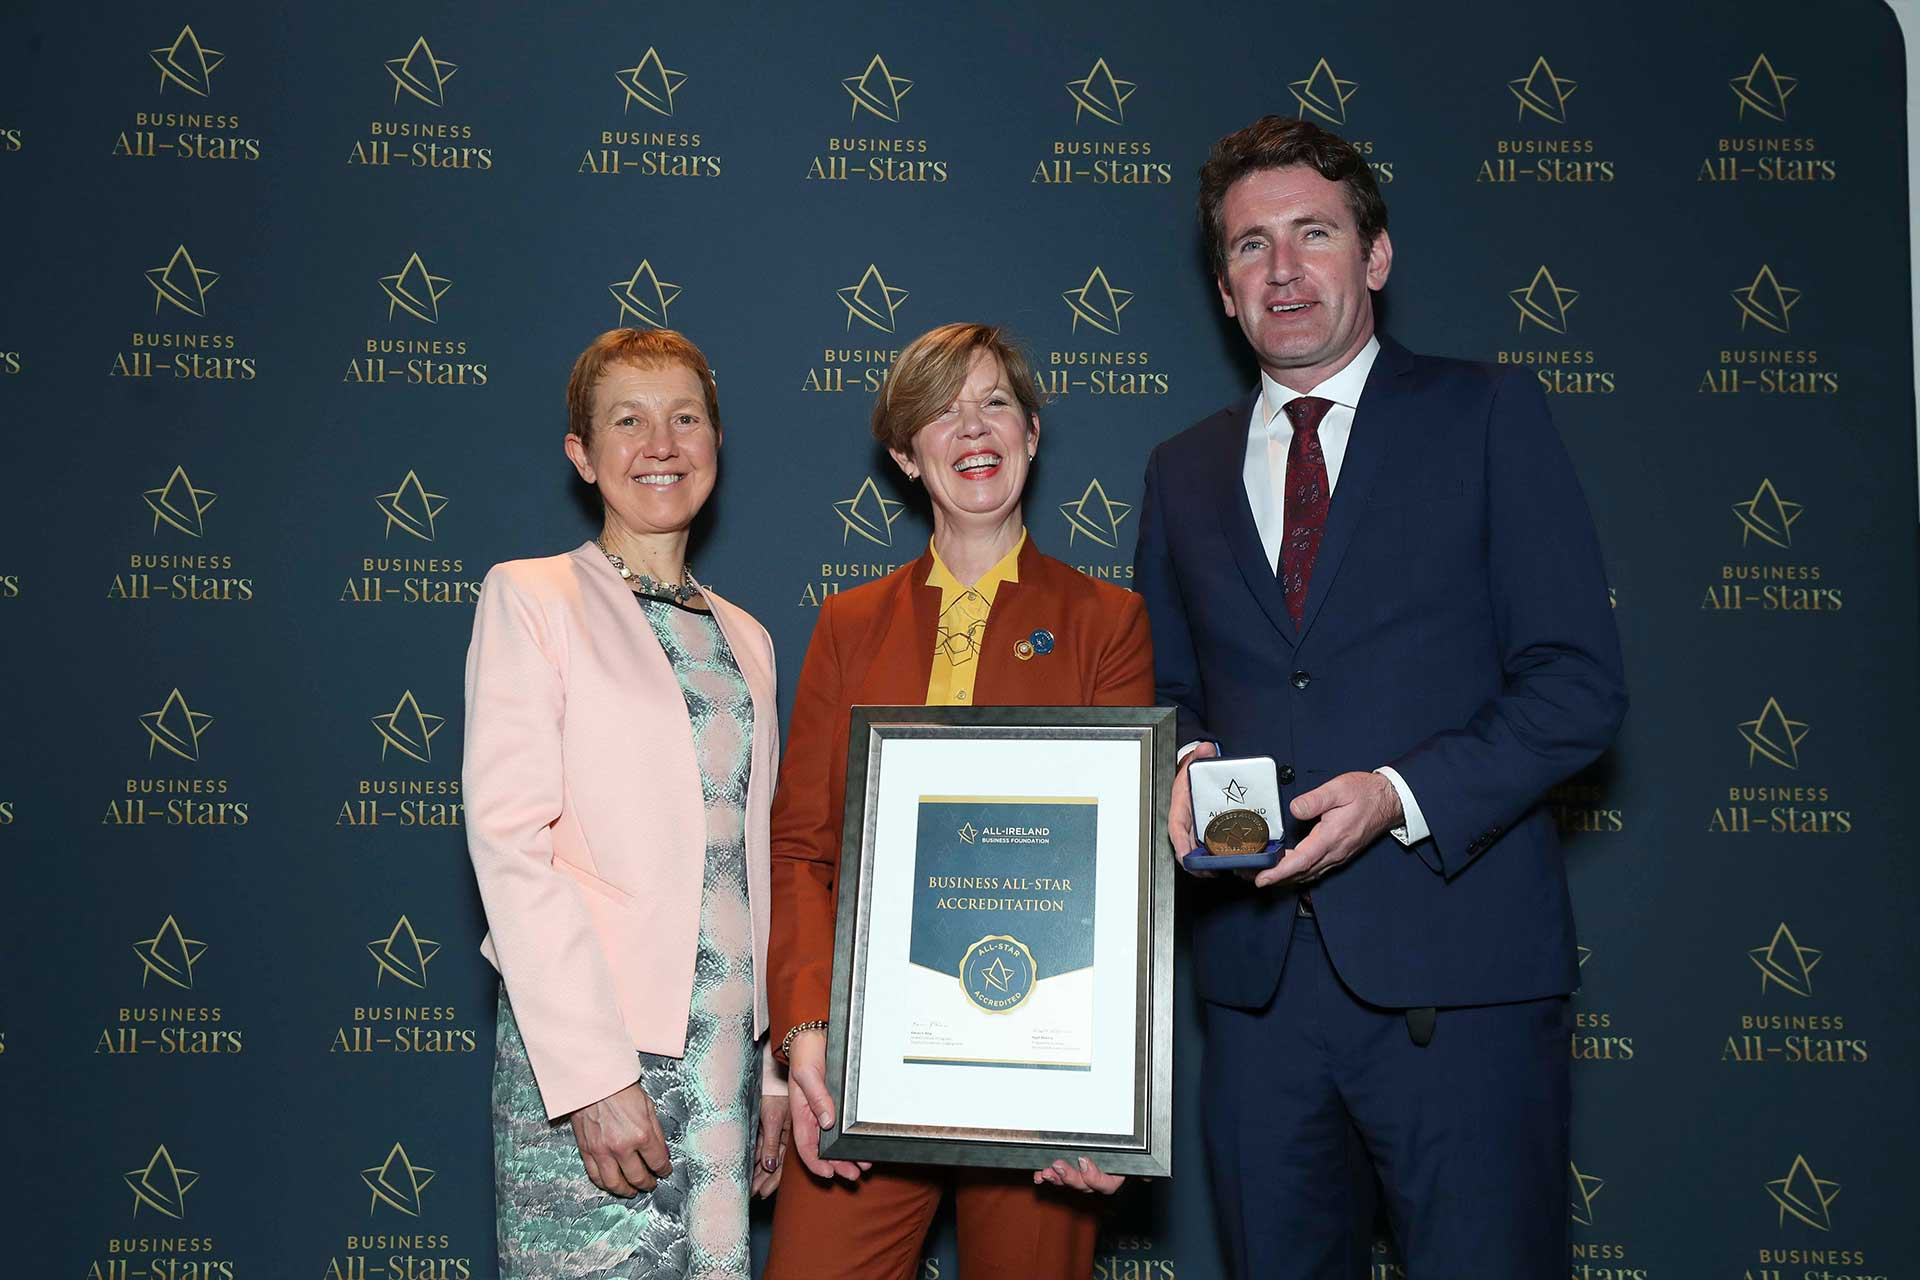 Maria Macklin, House of Colour receiving Business All-Star Accreditation at Croke Park from Dr Briga Hynes, Kemmy Business School, University of Limerick and Senator Aodhán Ó Ríordáin, Spokesperson on Education and Skills, Gaeilge and the Gaeltacht.